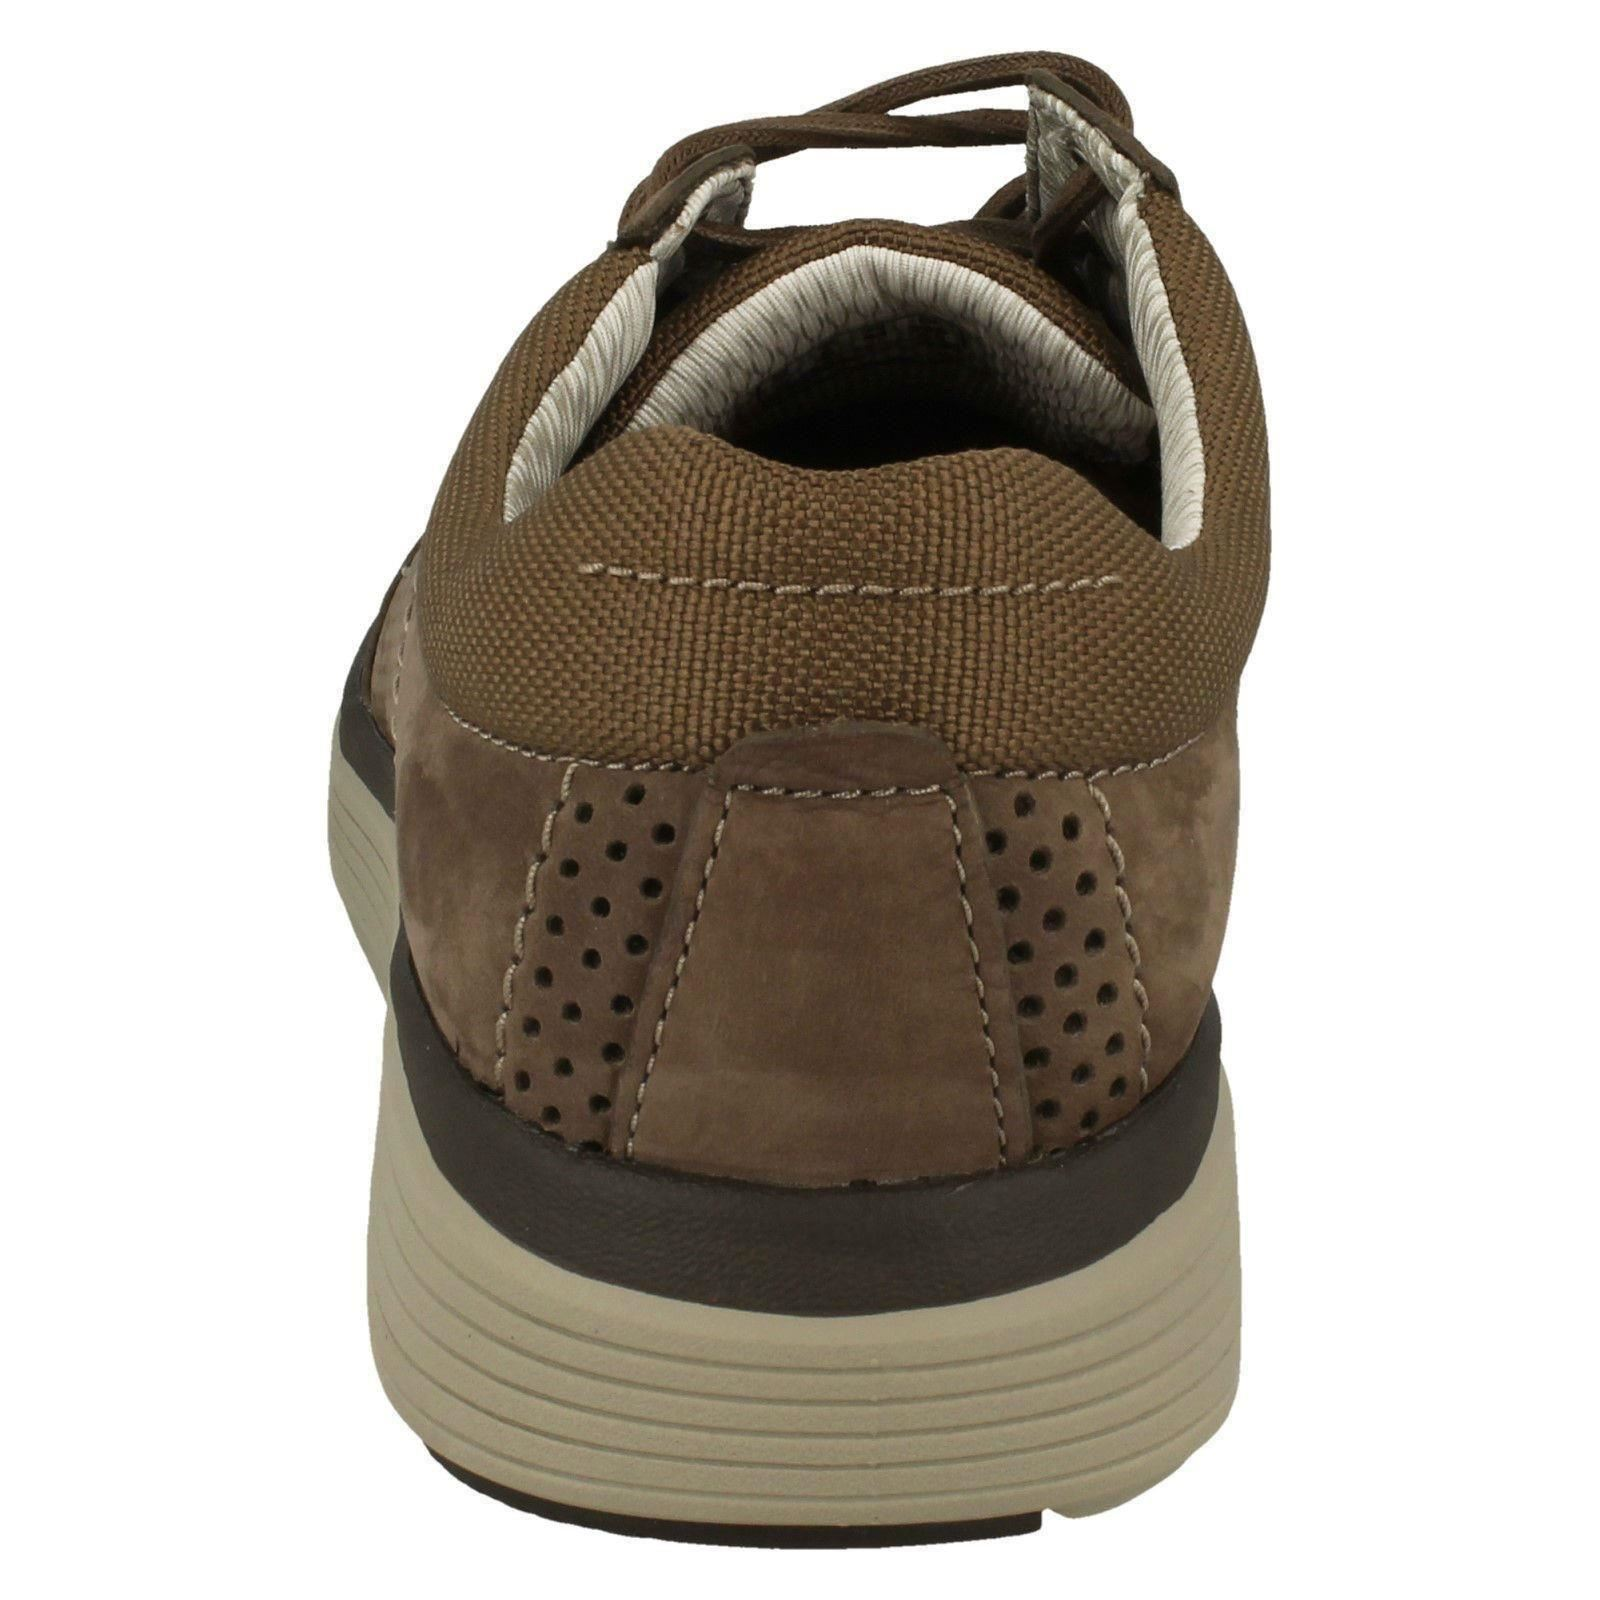 Shoes Unstructured Abode Up Clarks Casual Olive Lace Un Nubuck Label Men's By WYzSqcnpYd